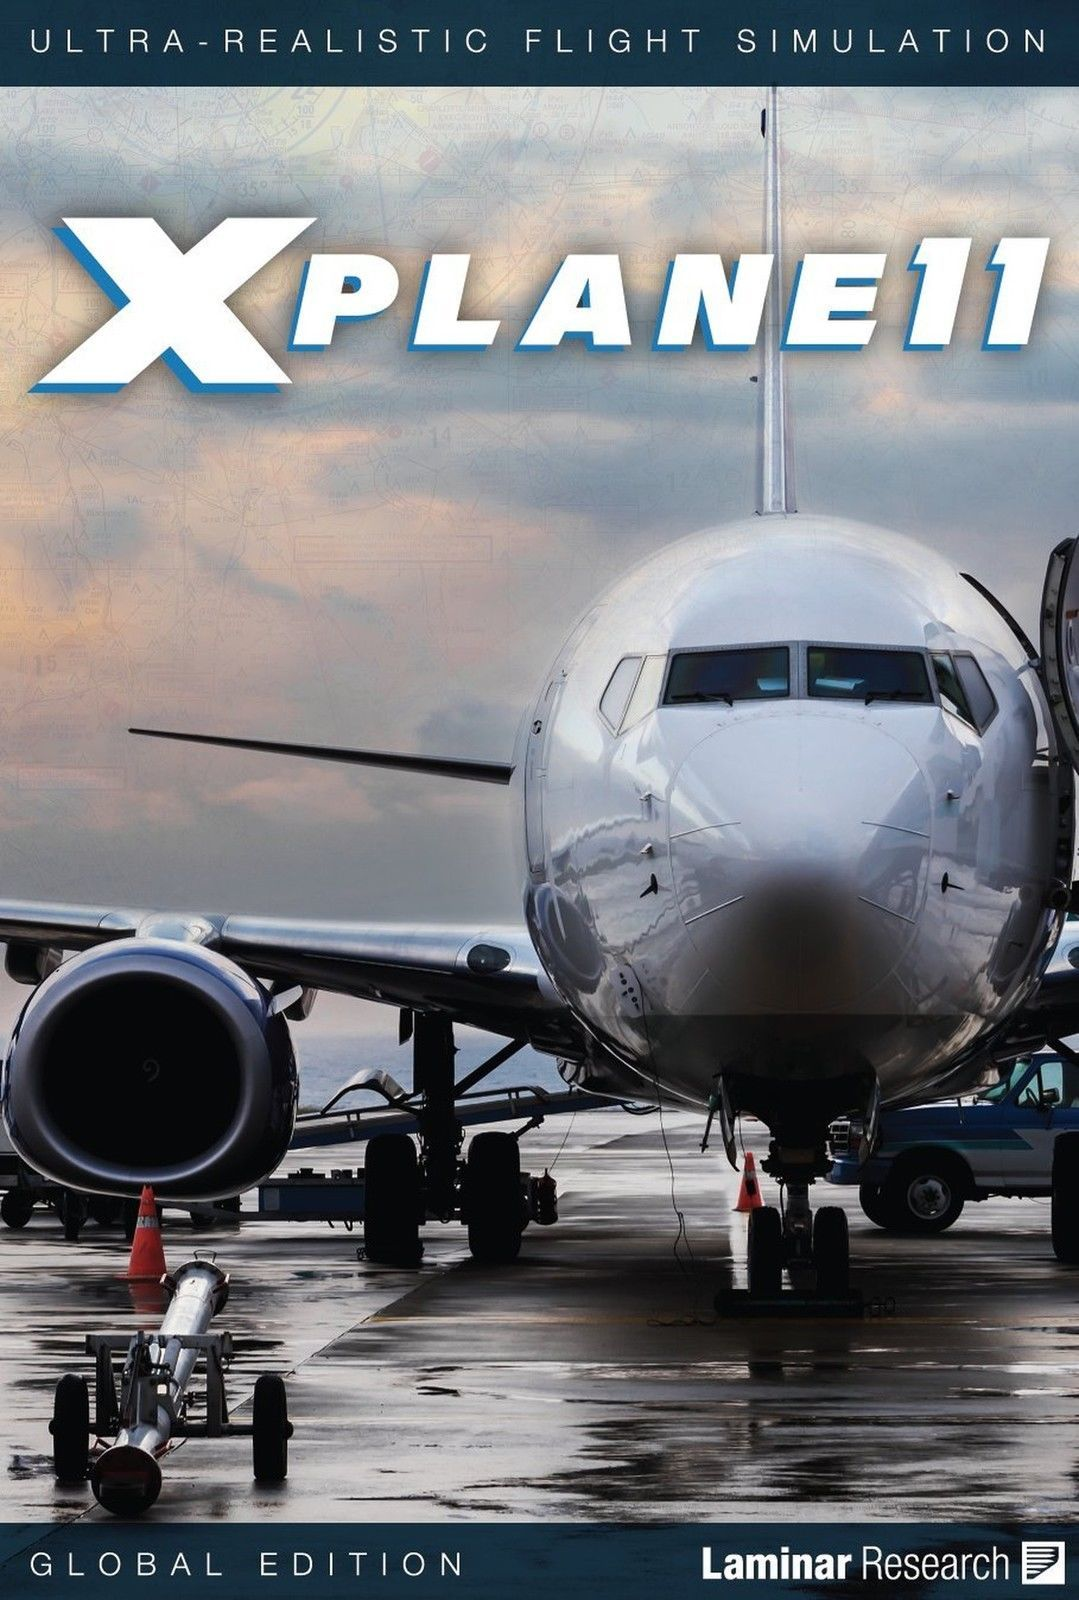 Details about X Plane 11 Global Edition PC MAC LINUX 8 DVD set NEW